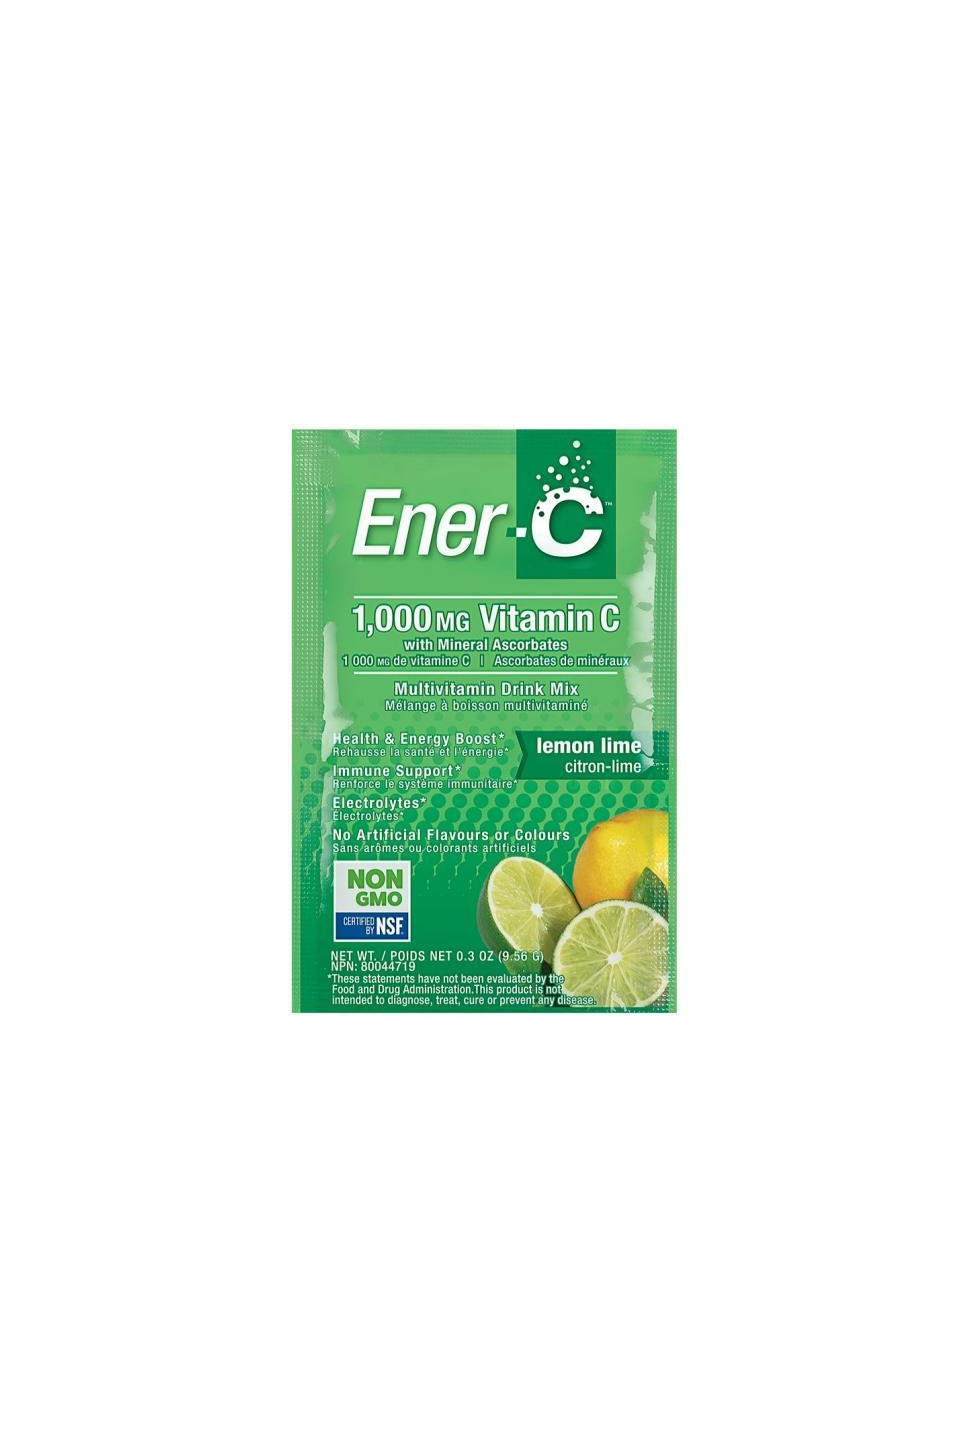 Ener-C Lemon Lime Multivitamin Drink Mix - 1,000mg Vitamin C 1 Sachet